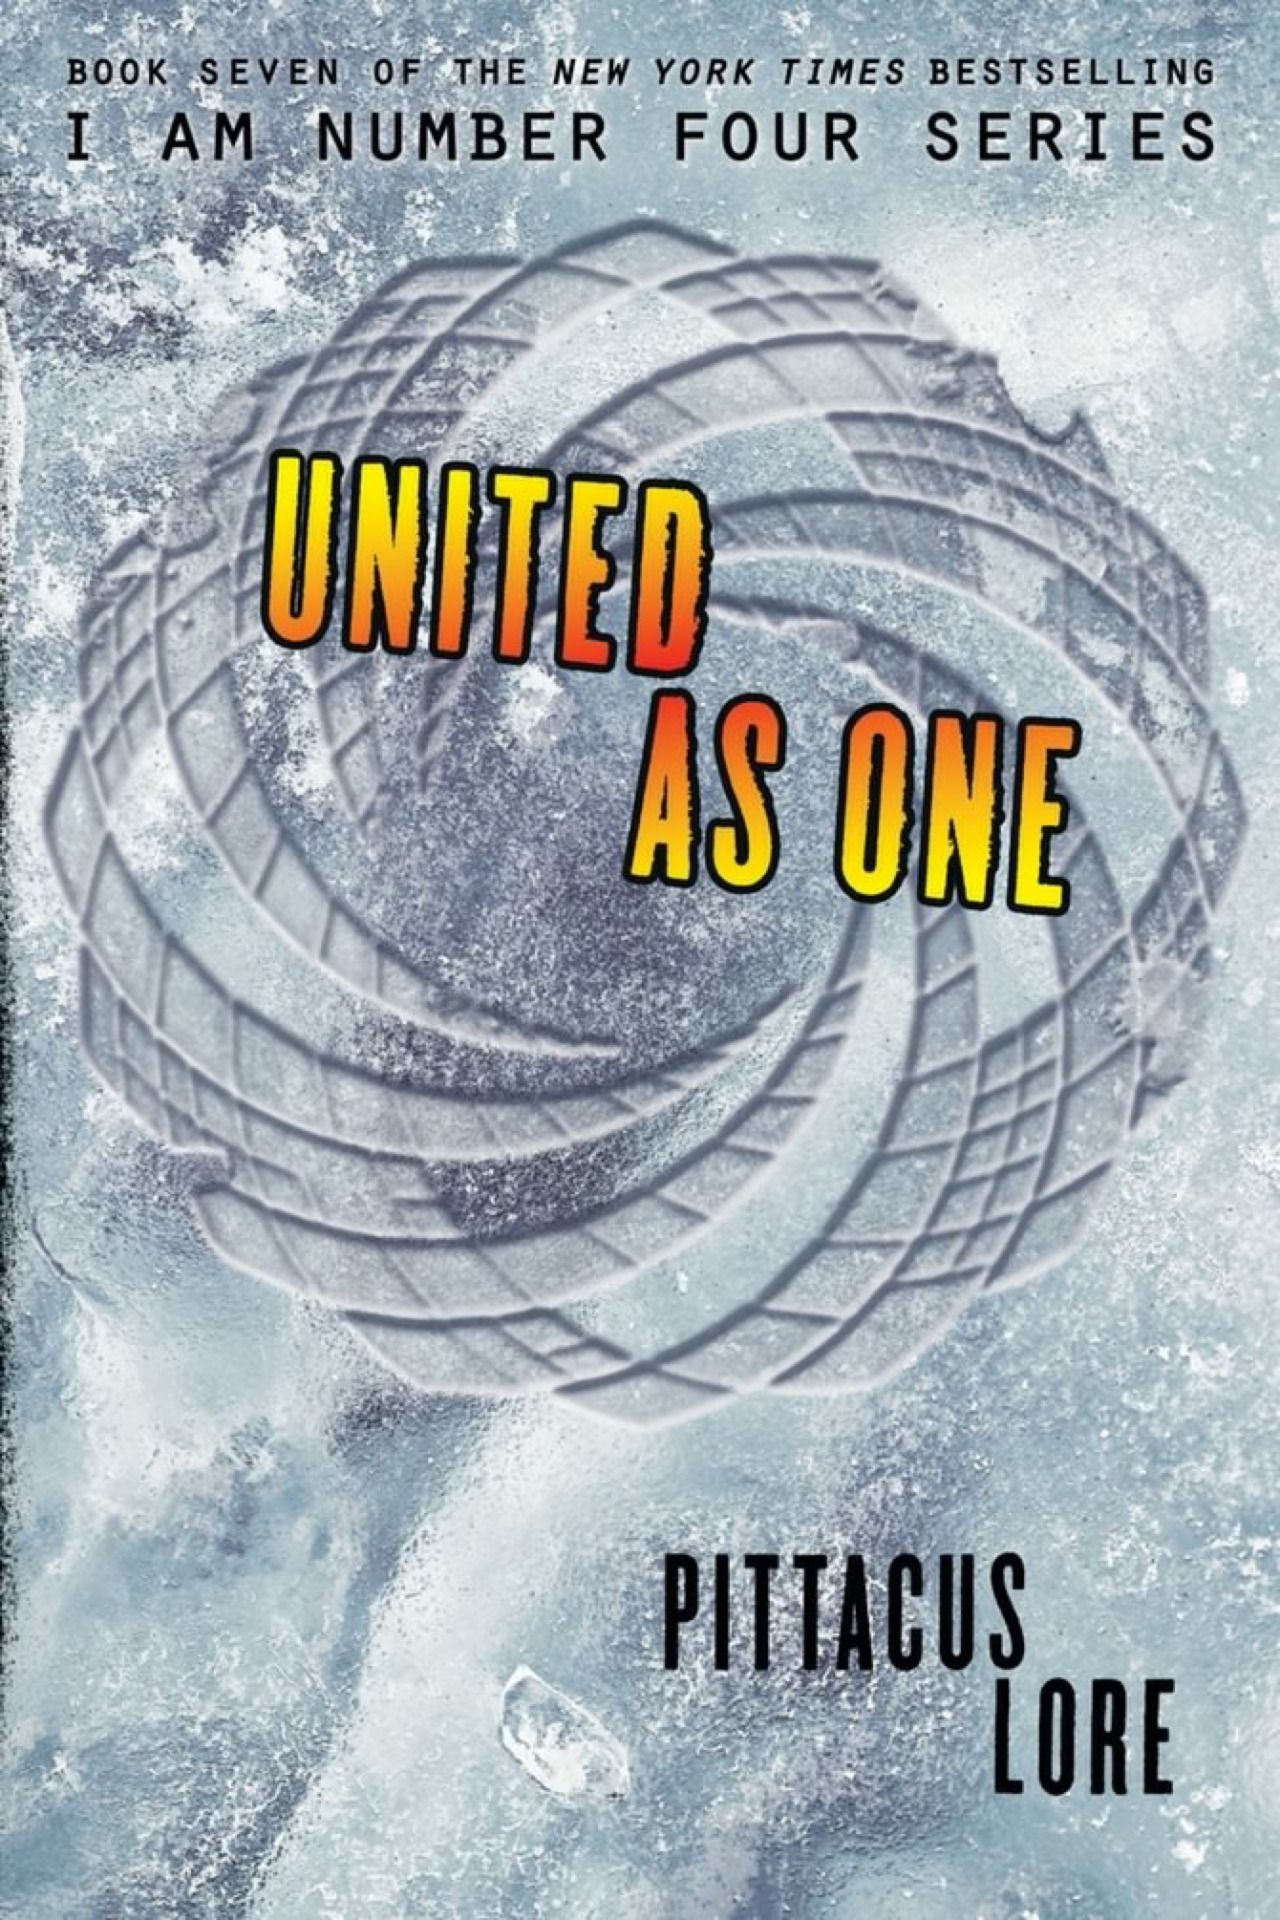 United As One, By Pittacus Lore (released Jun 28, 2016) Book